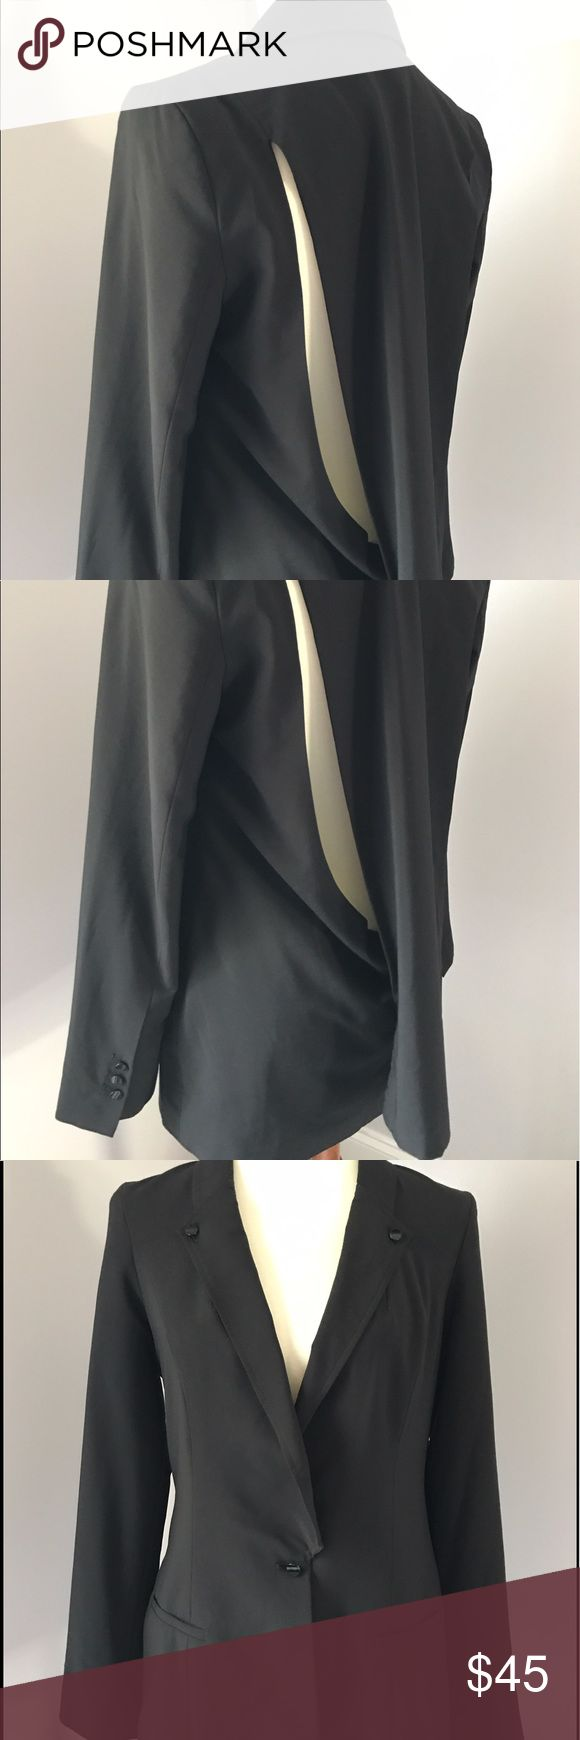 """BCBGenration Peek-a-Boo Back Blazer Jacket Size S BCBGeneration Black Blazer Jacket with a stylish peek-a-boo flap in back. •Size: Small •Single button closure •Stylish peek-a-boo flap on back •32"""" length, 38"""" bust, 25"""" shoulder to cuff •94% polyester, 6% spandex •Machine washable •Style: OIE4C878 Condition: In excellent condition. Very minor pilling and staining in interior armpit area. Item is clean and comes from a smoke free home! BCBGeneration Jackets & Coats Blazers"""